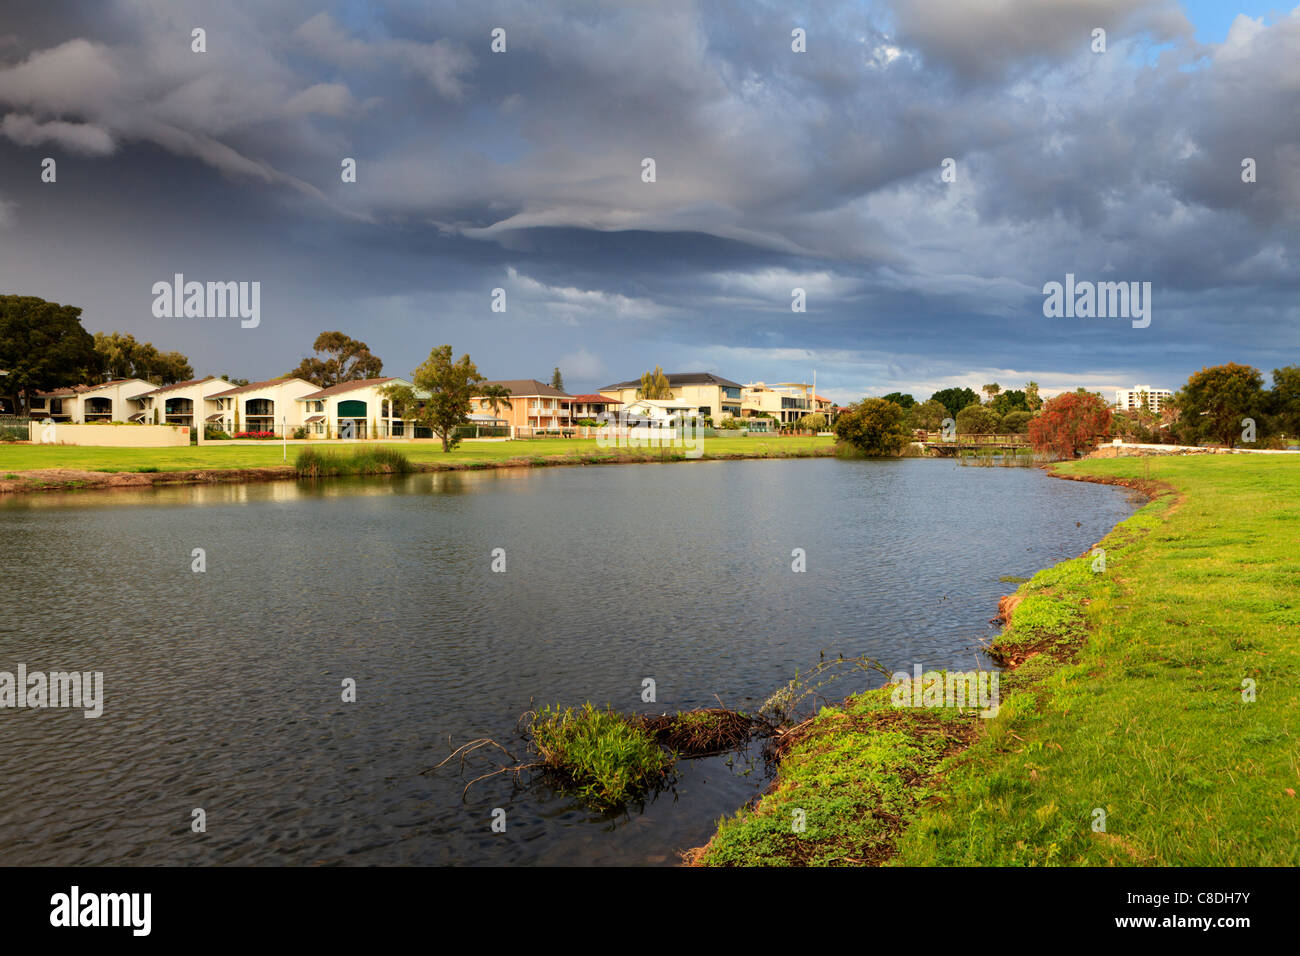 Large lakeside houses beneath a stunning stormy sky in affluent South Perth, Western Australia. - Stock Image